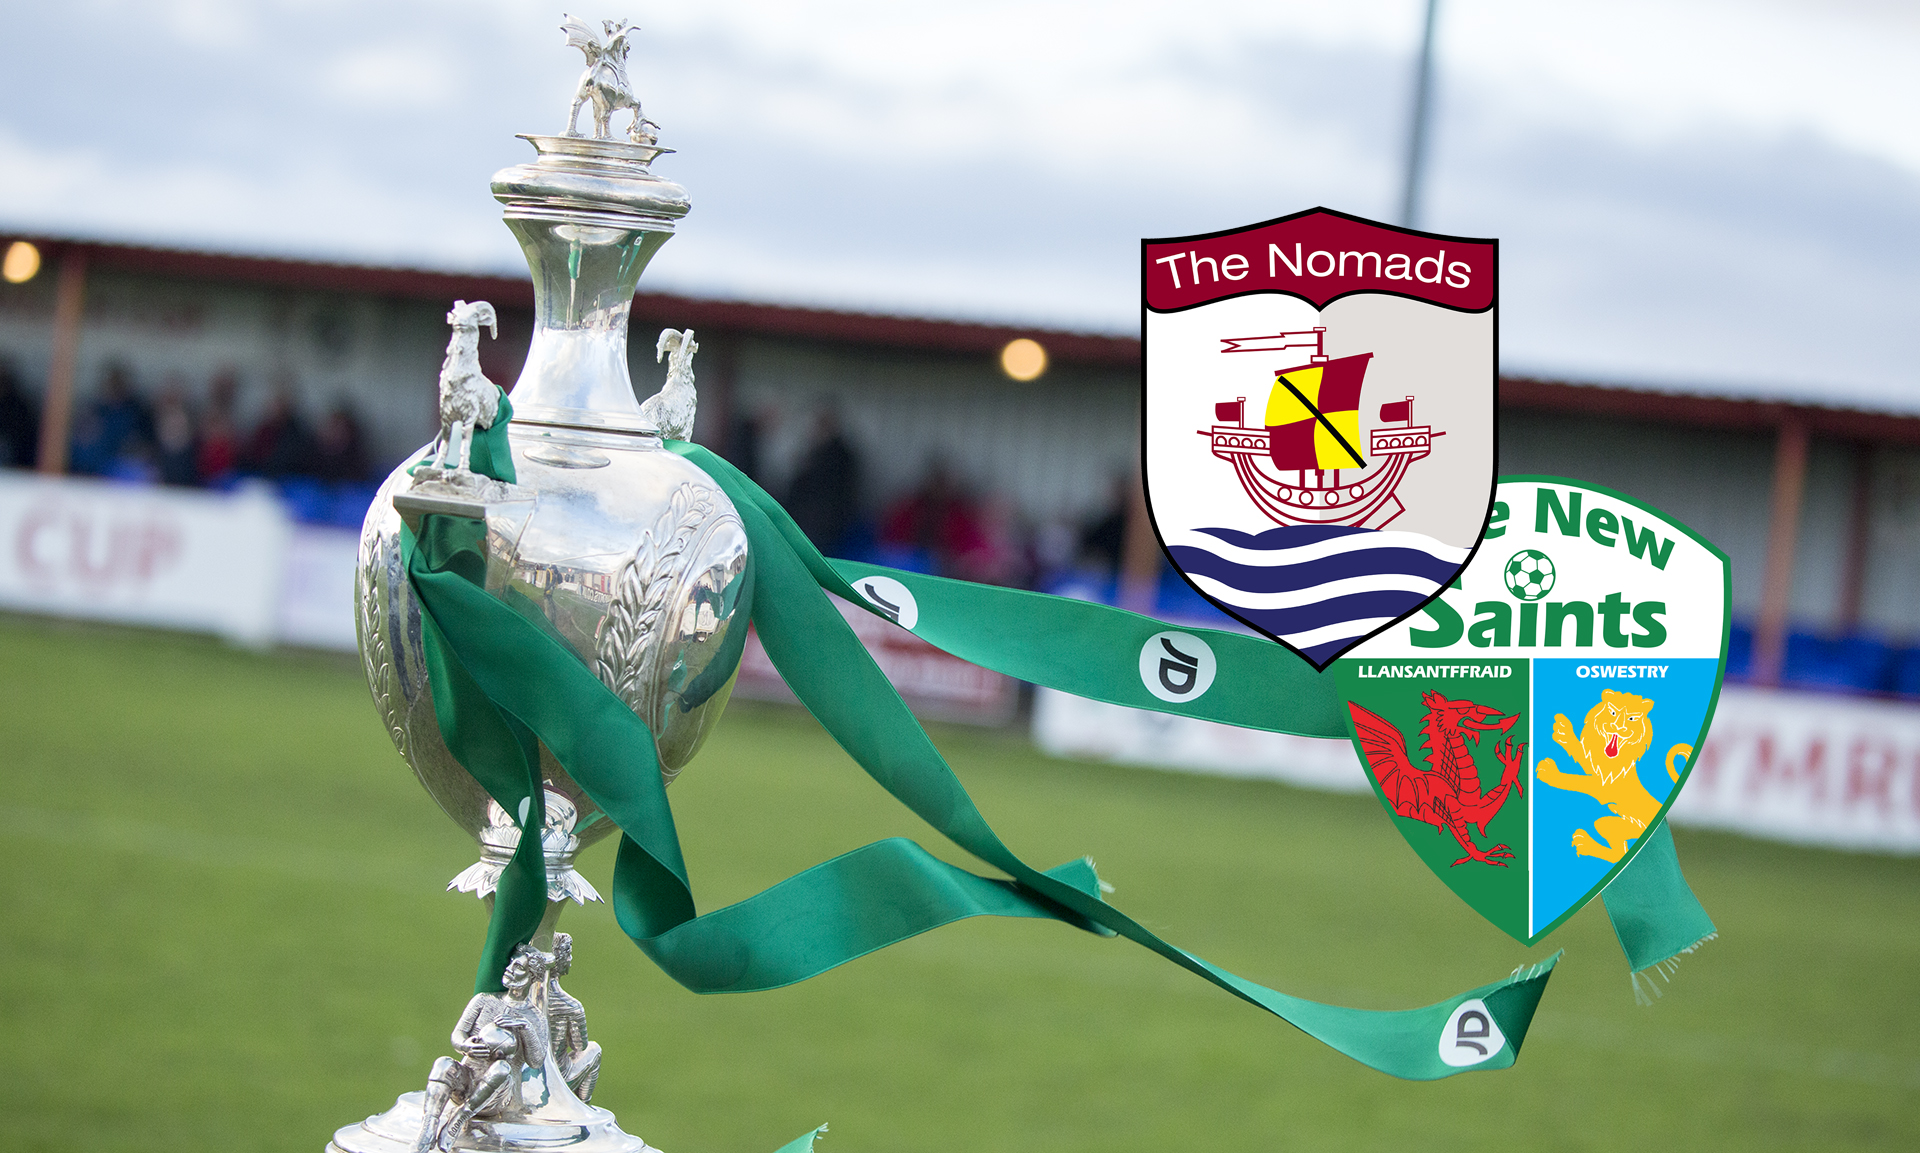 The Nomads vs The New Saints JD Welsh Cup Semi Final